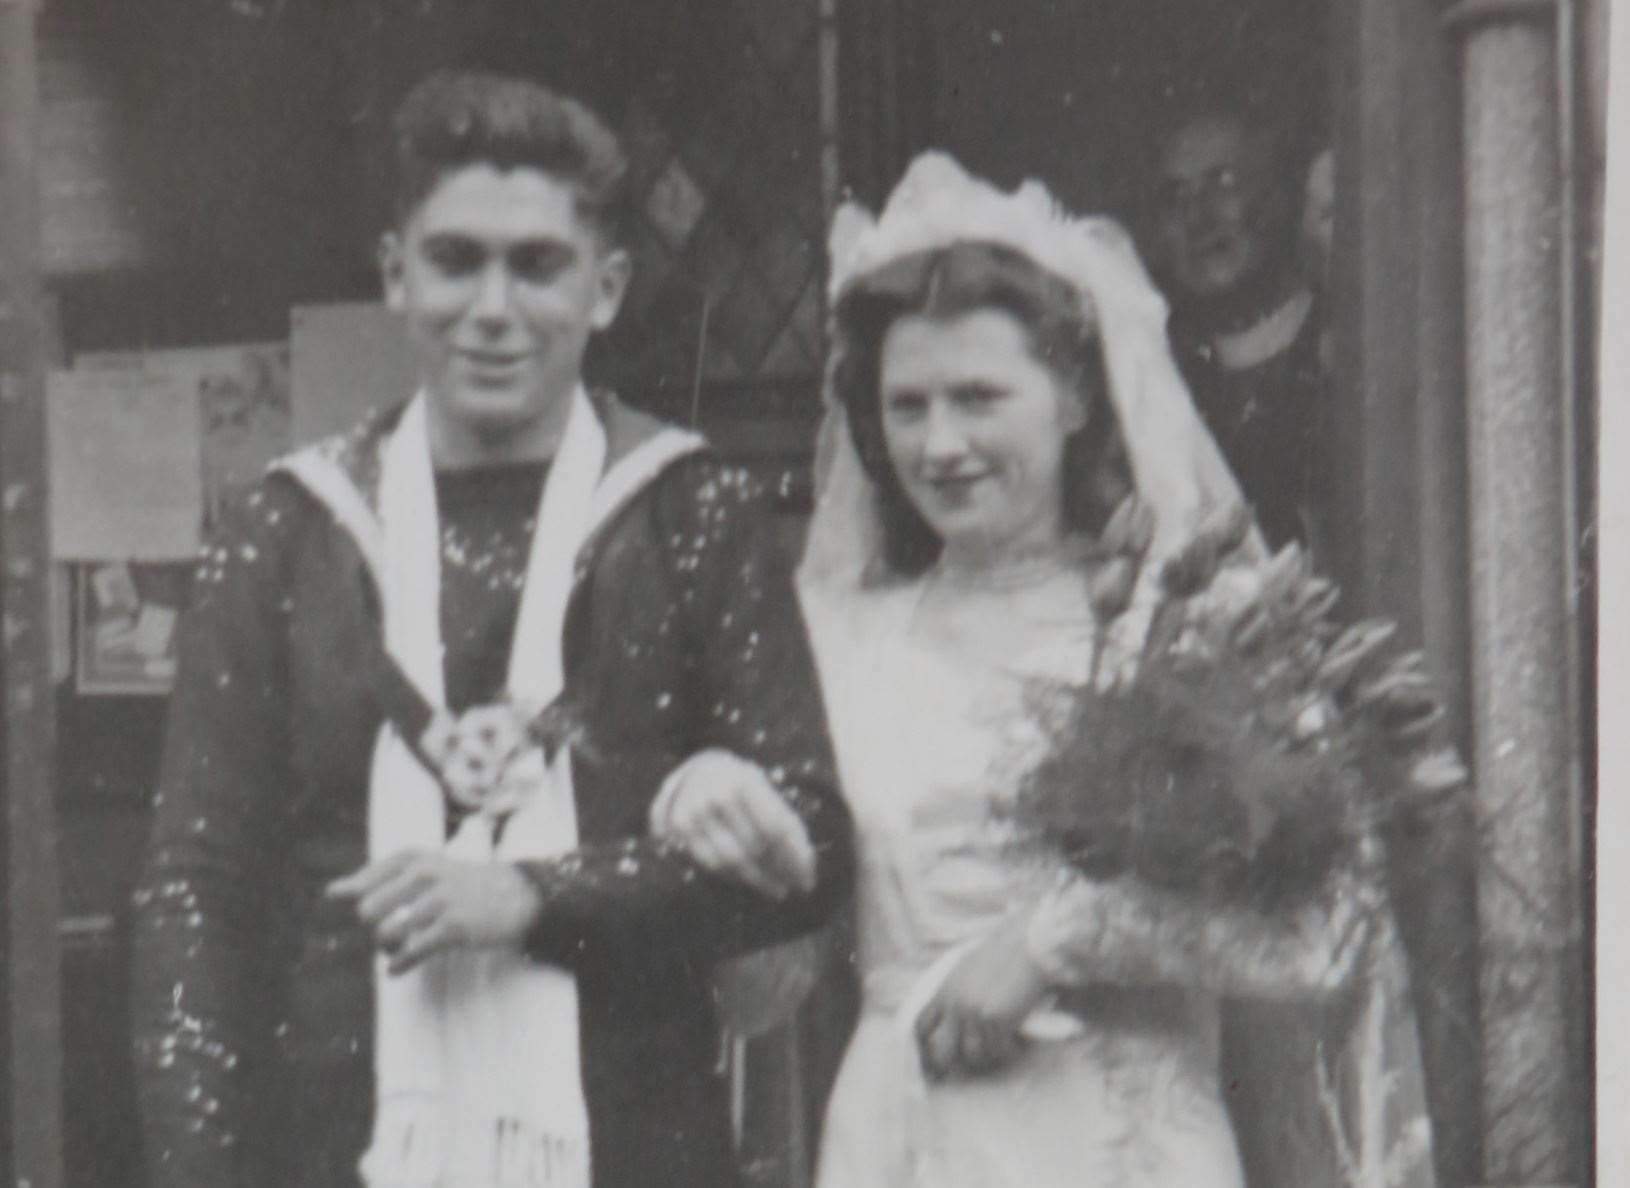 David and Enid Janaway on their wedding day in 1949